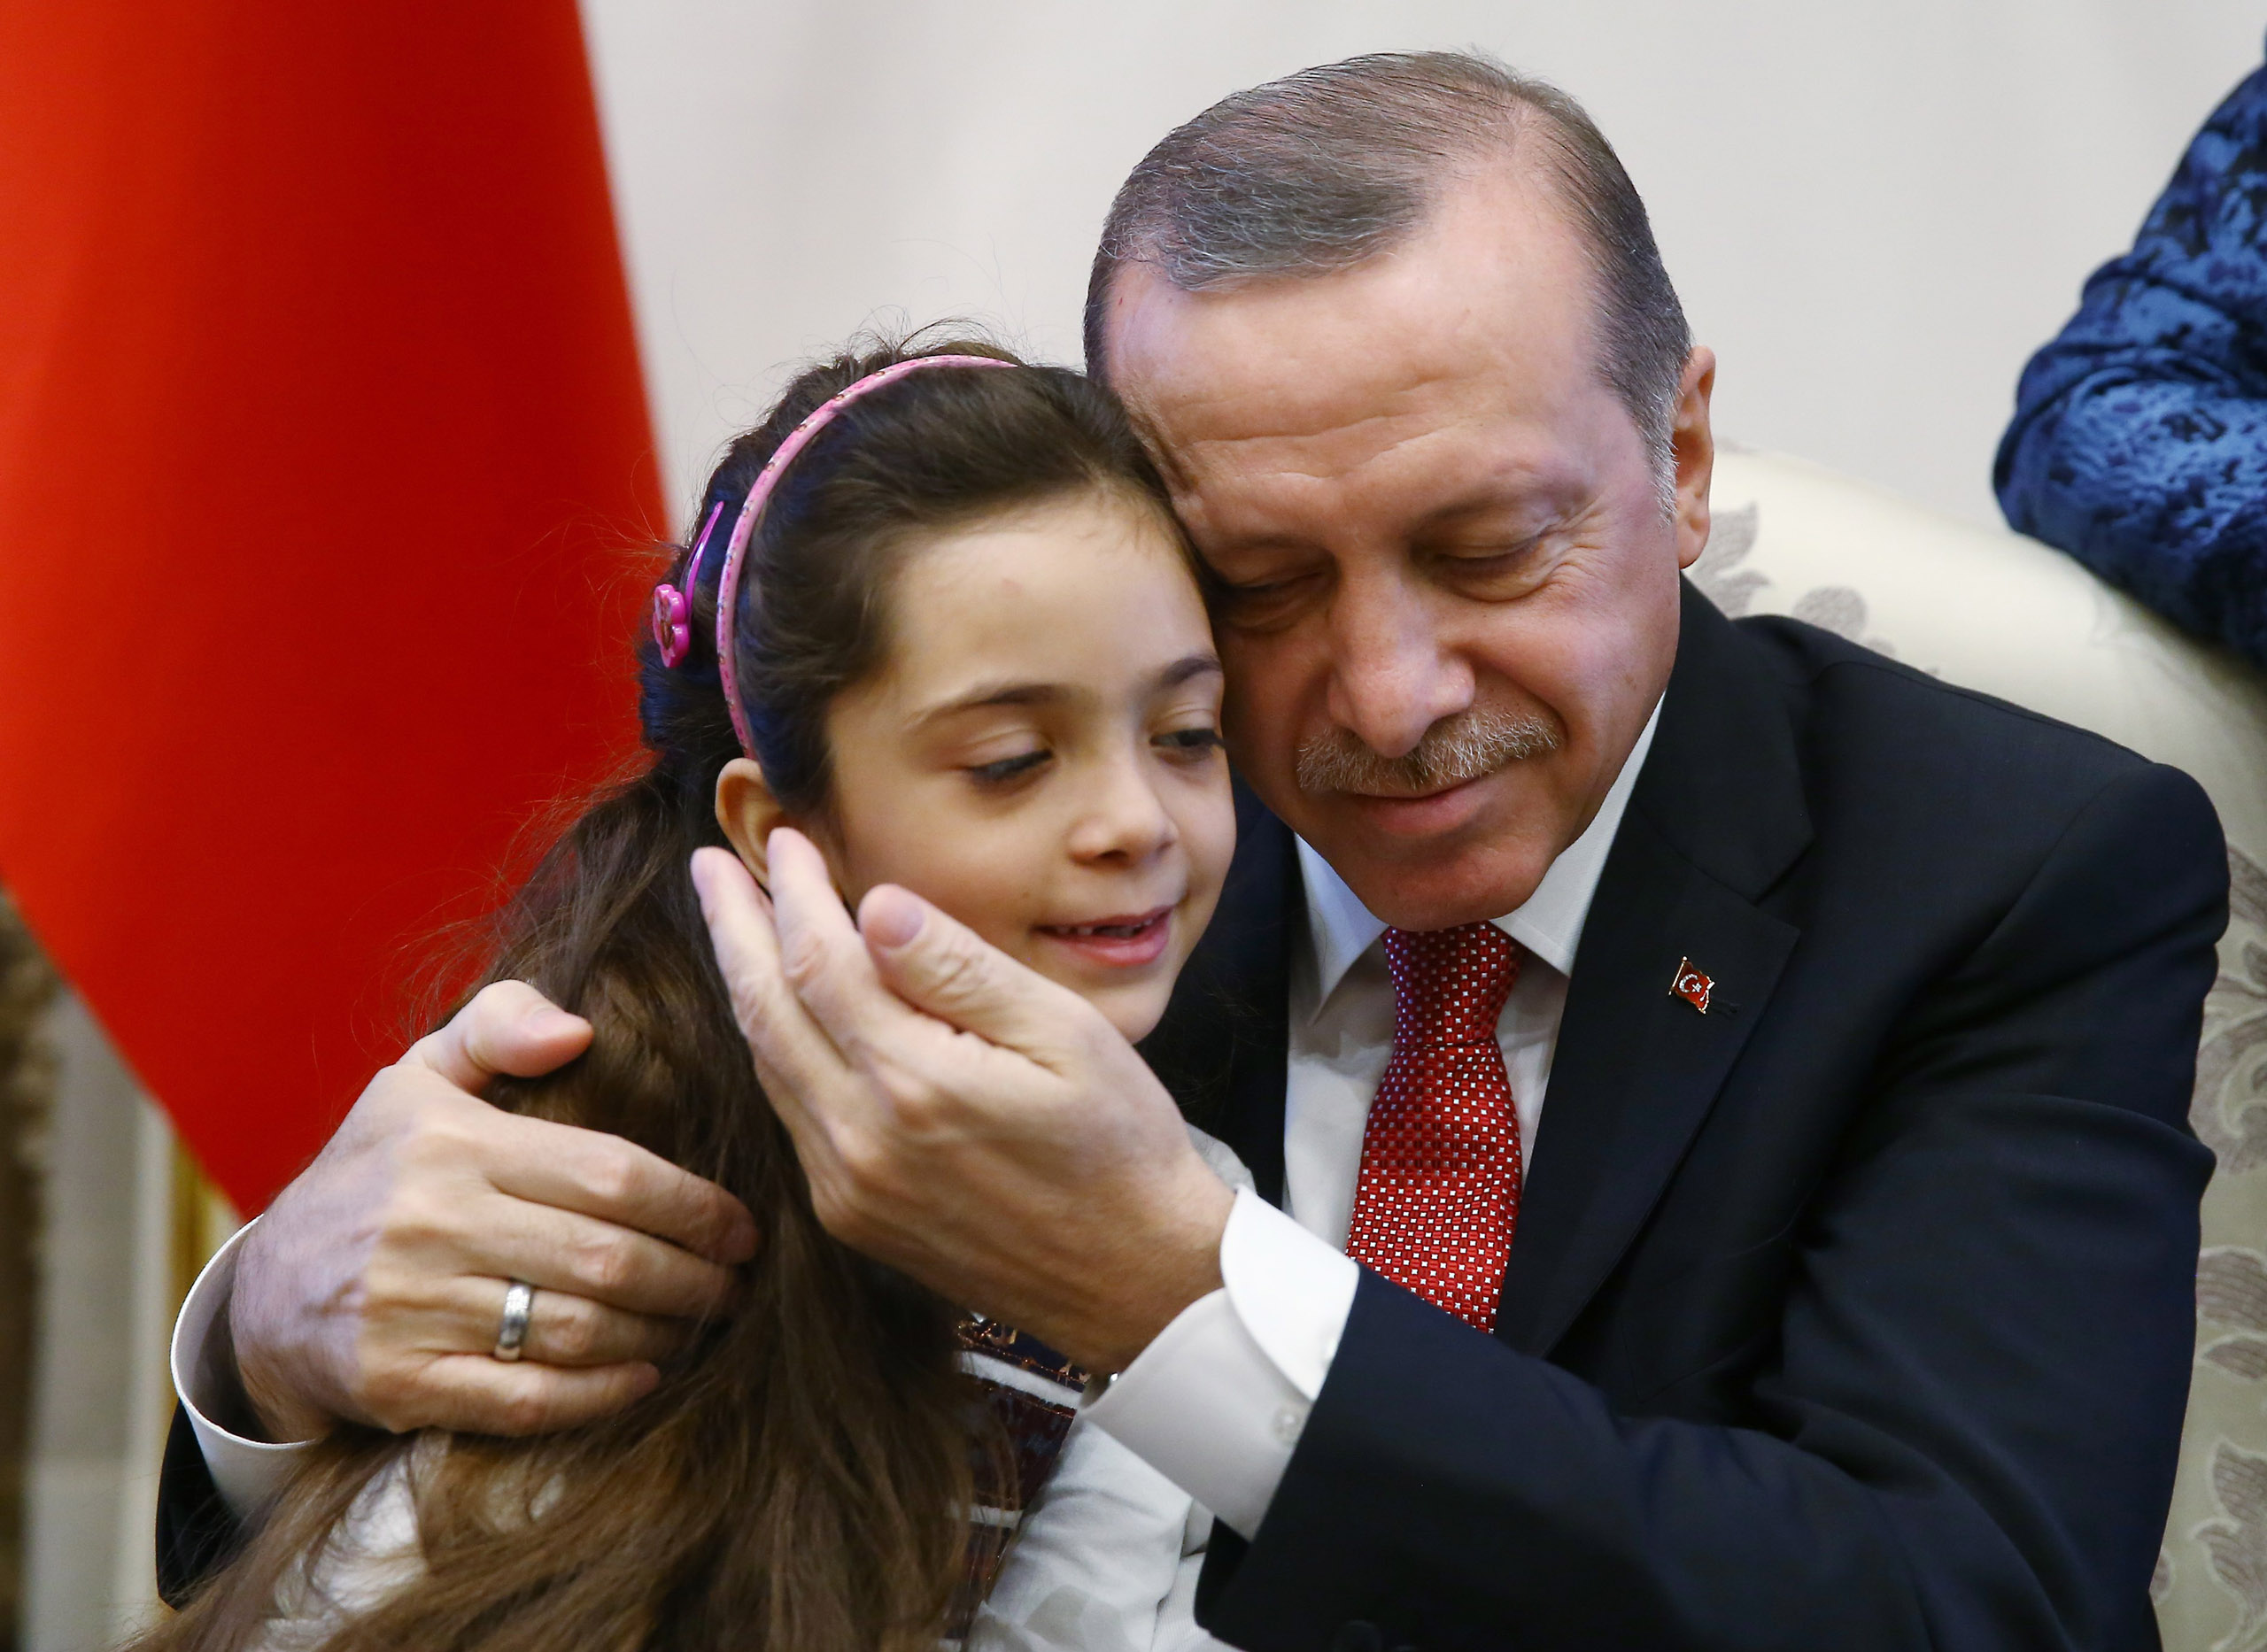 Turkish President Recep Tayyip Erdogan meets Syrian Bana Alabed, seven-year-old girl who tweeted on attacks from Aleppo, at Presidential Complex in Ankara, Turkey on December 21, 2016.